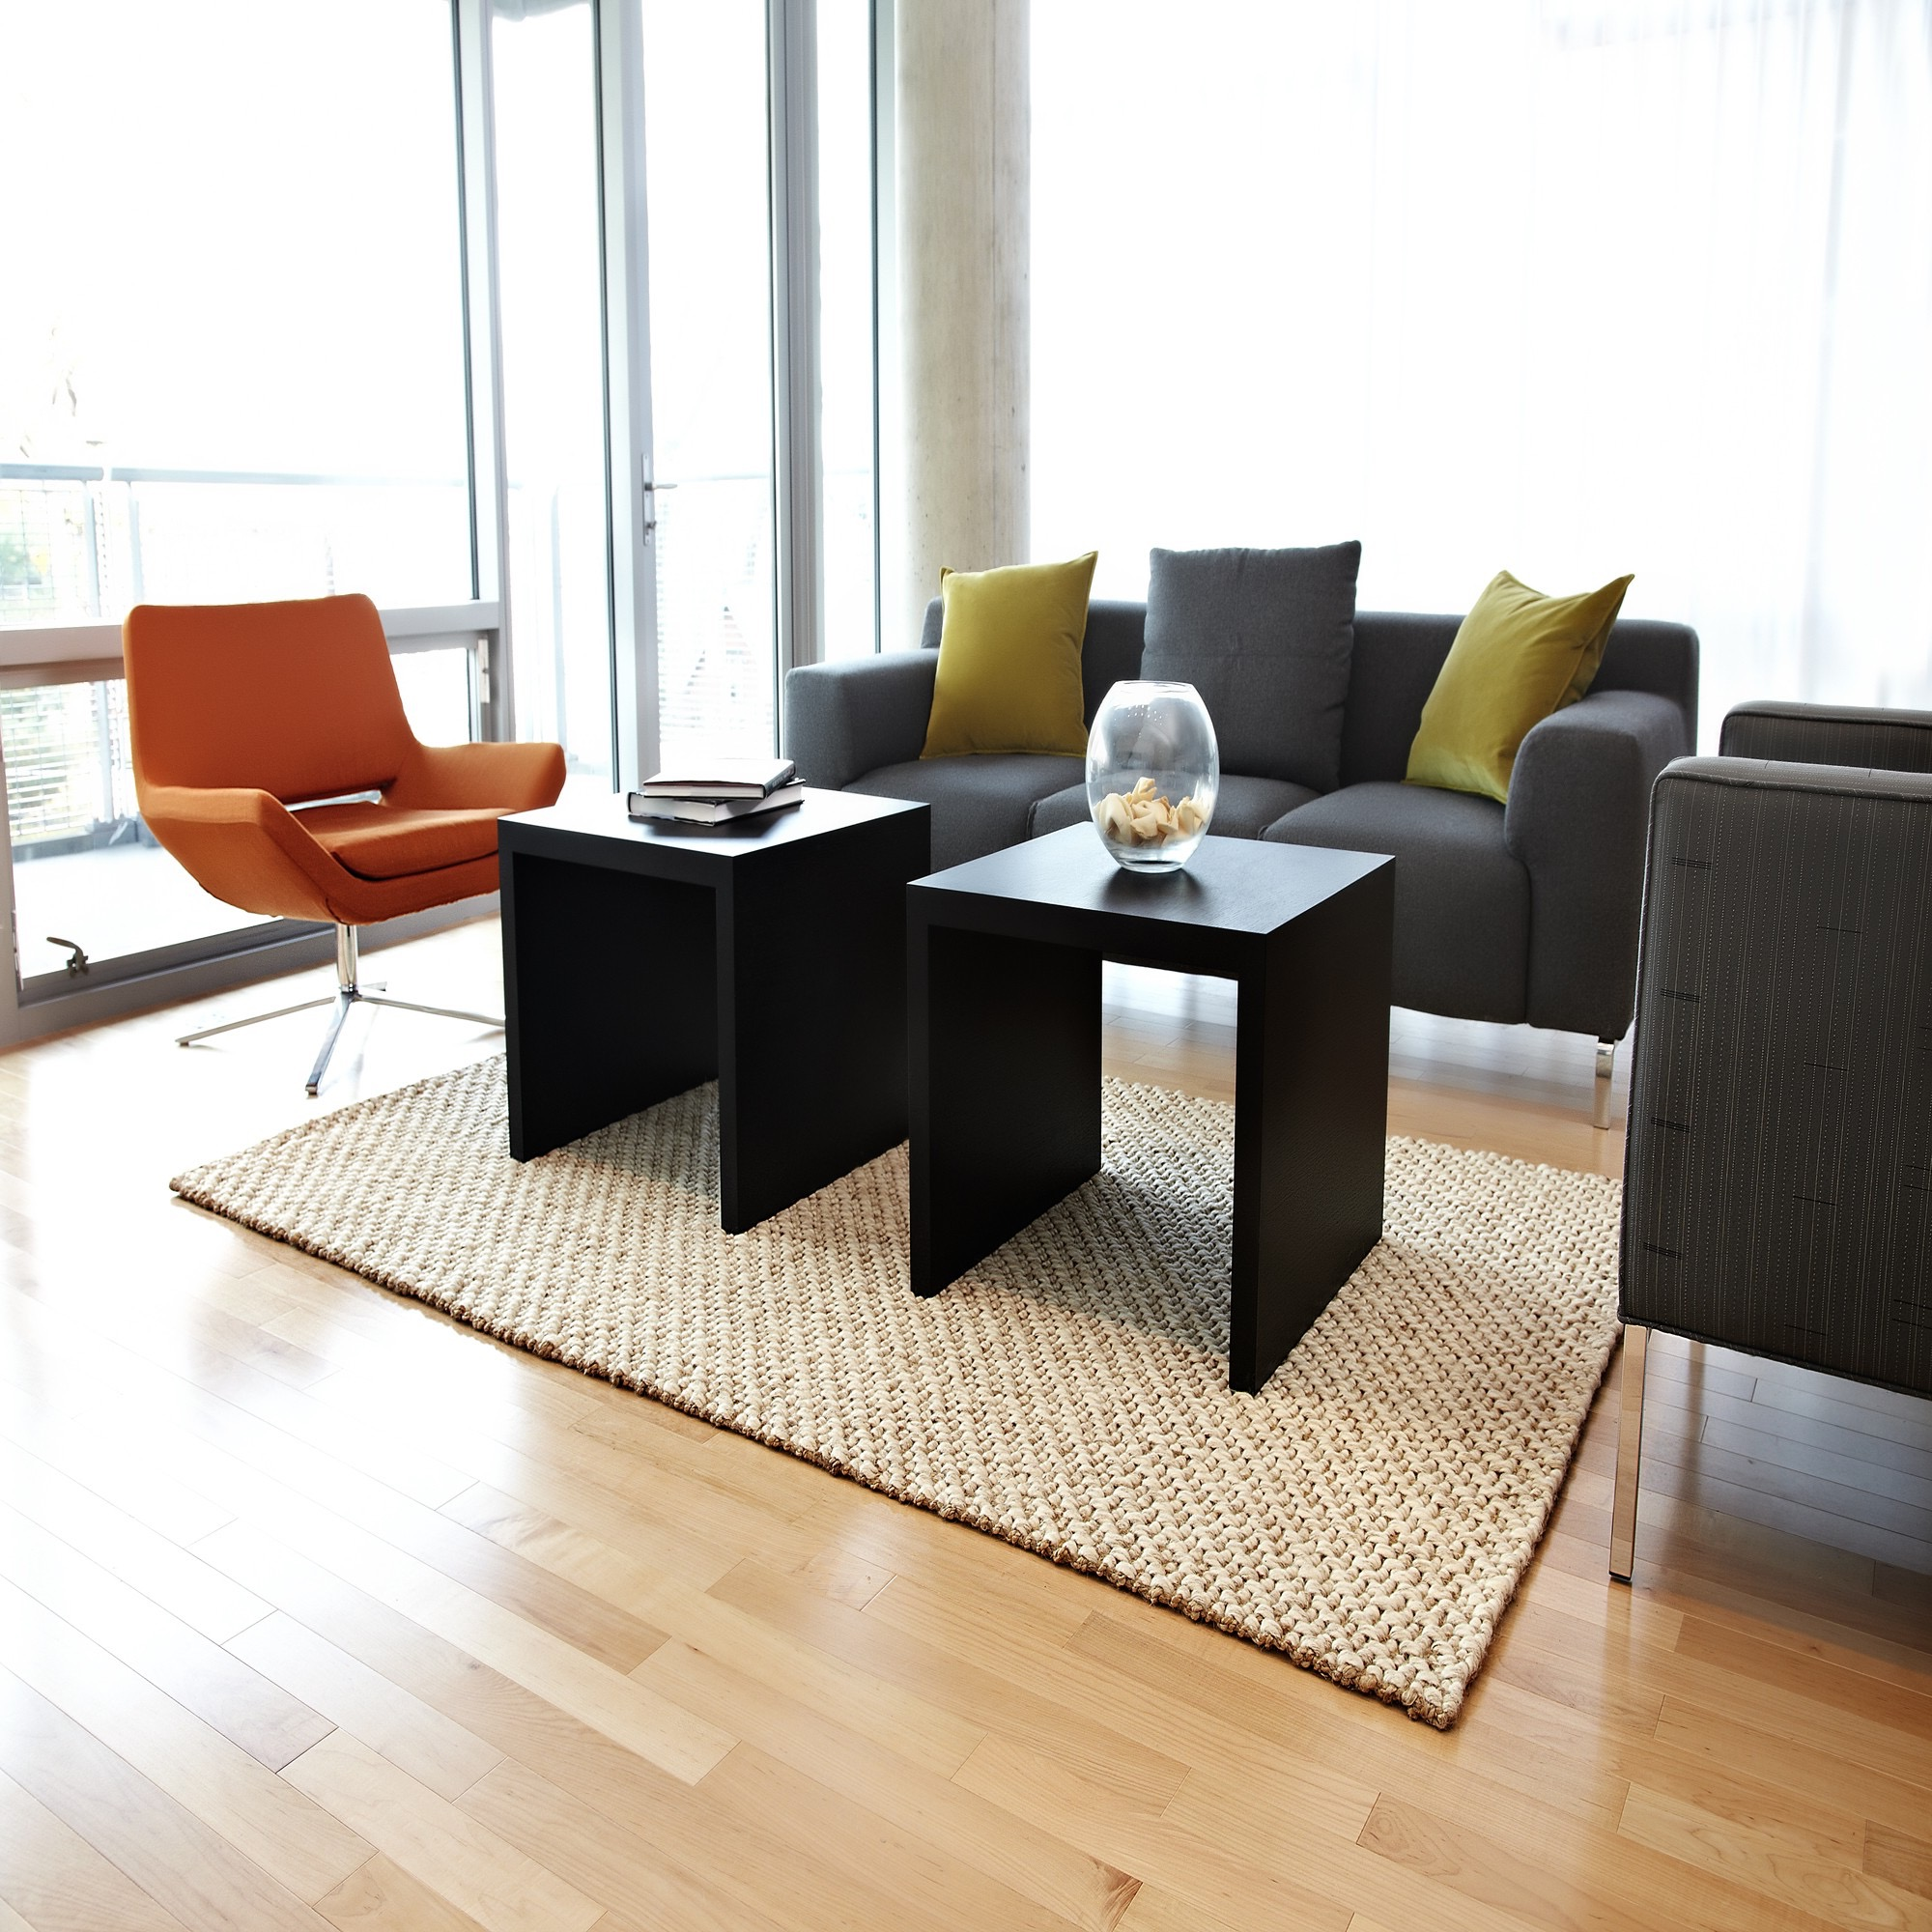 Modern Minimalist Apartment Living Room With Flat Chairs And Jute Braided Rug (View 5 of 15)